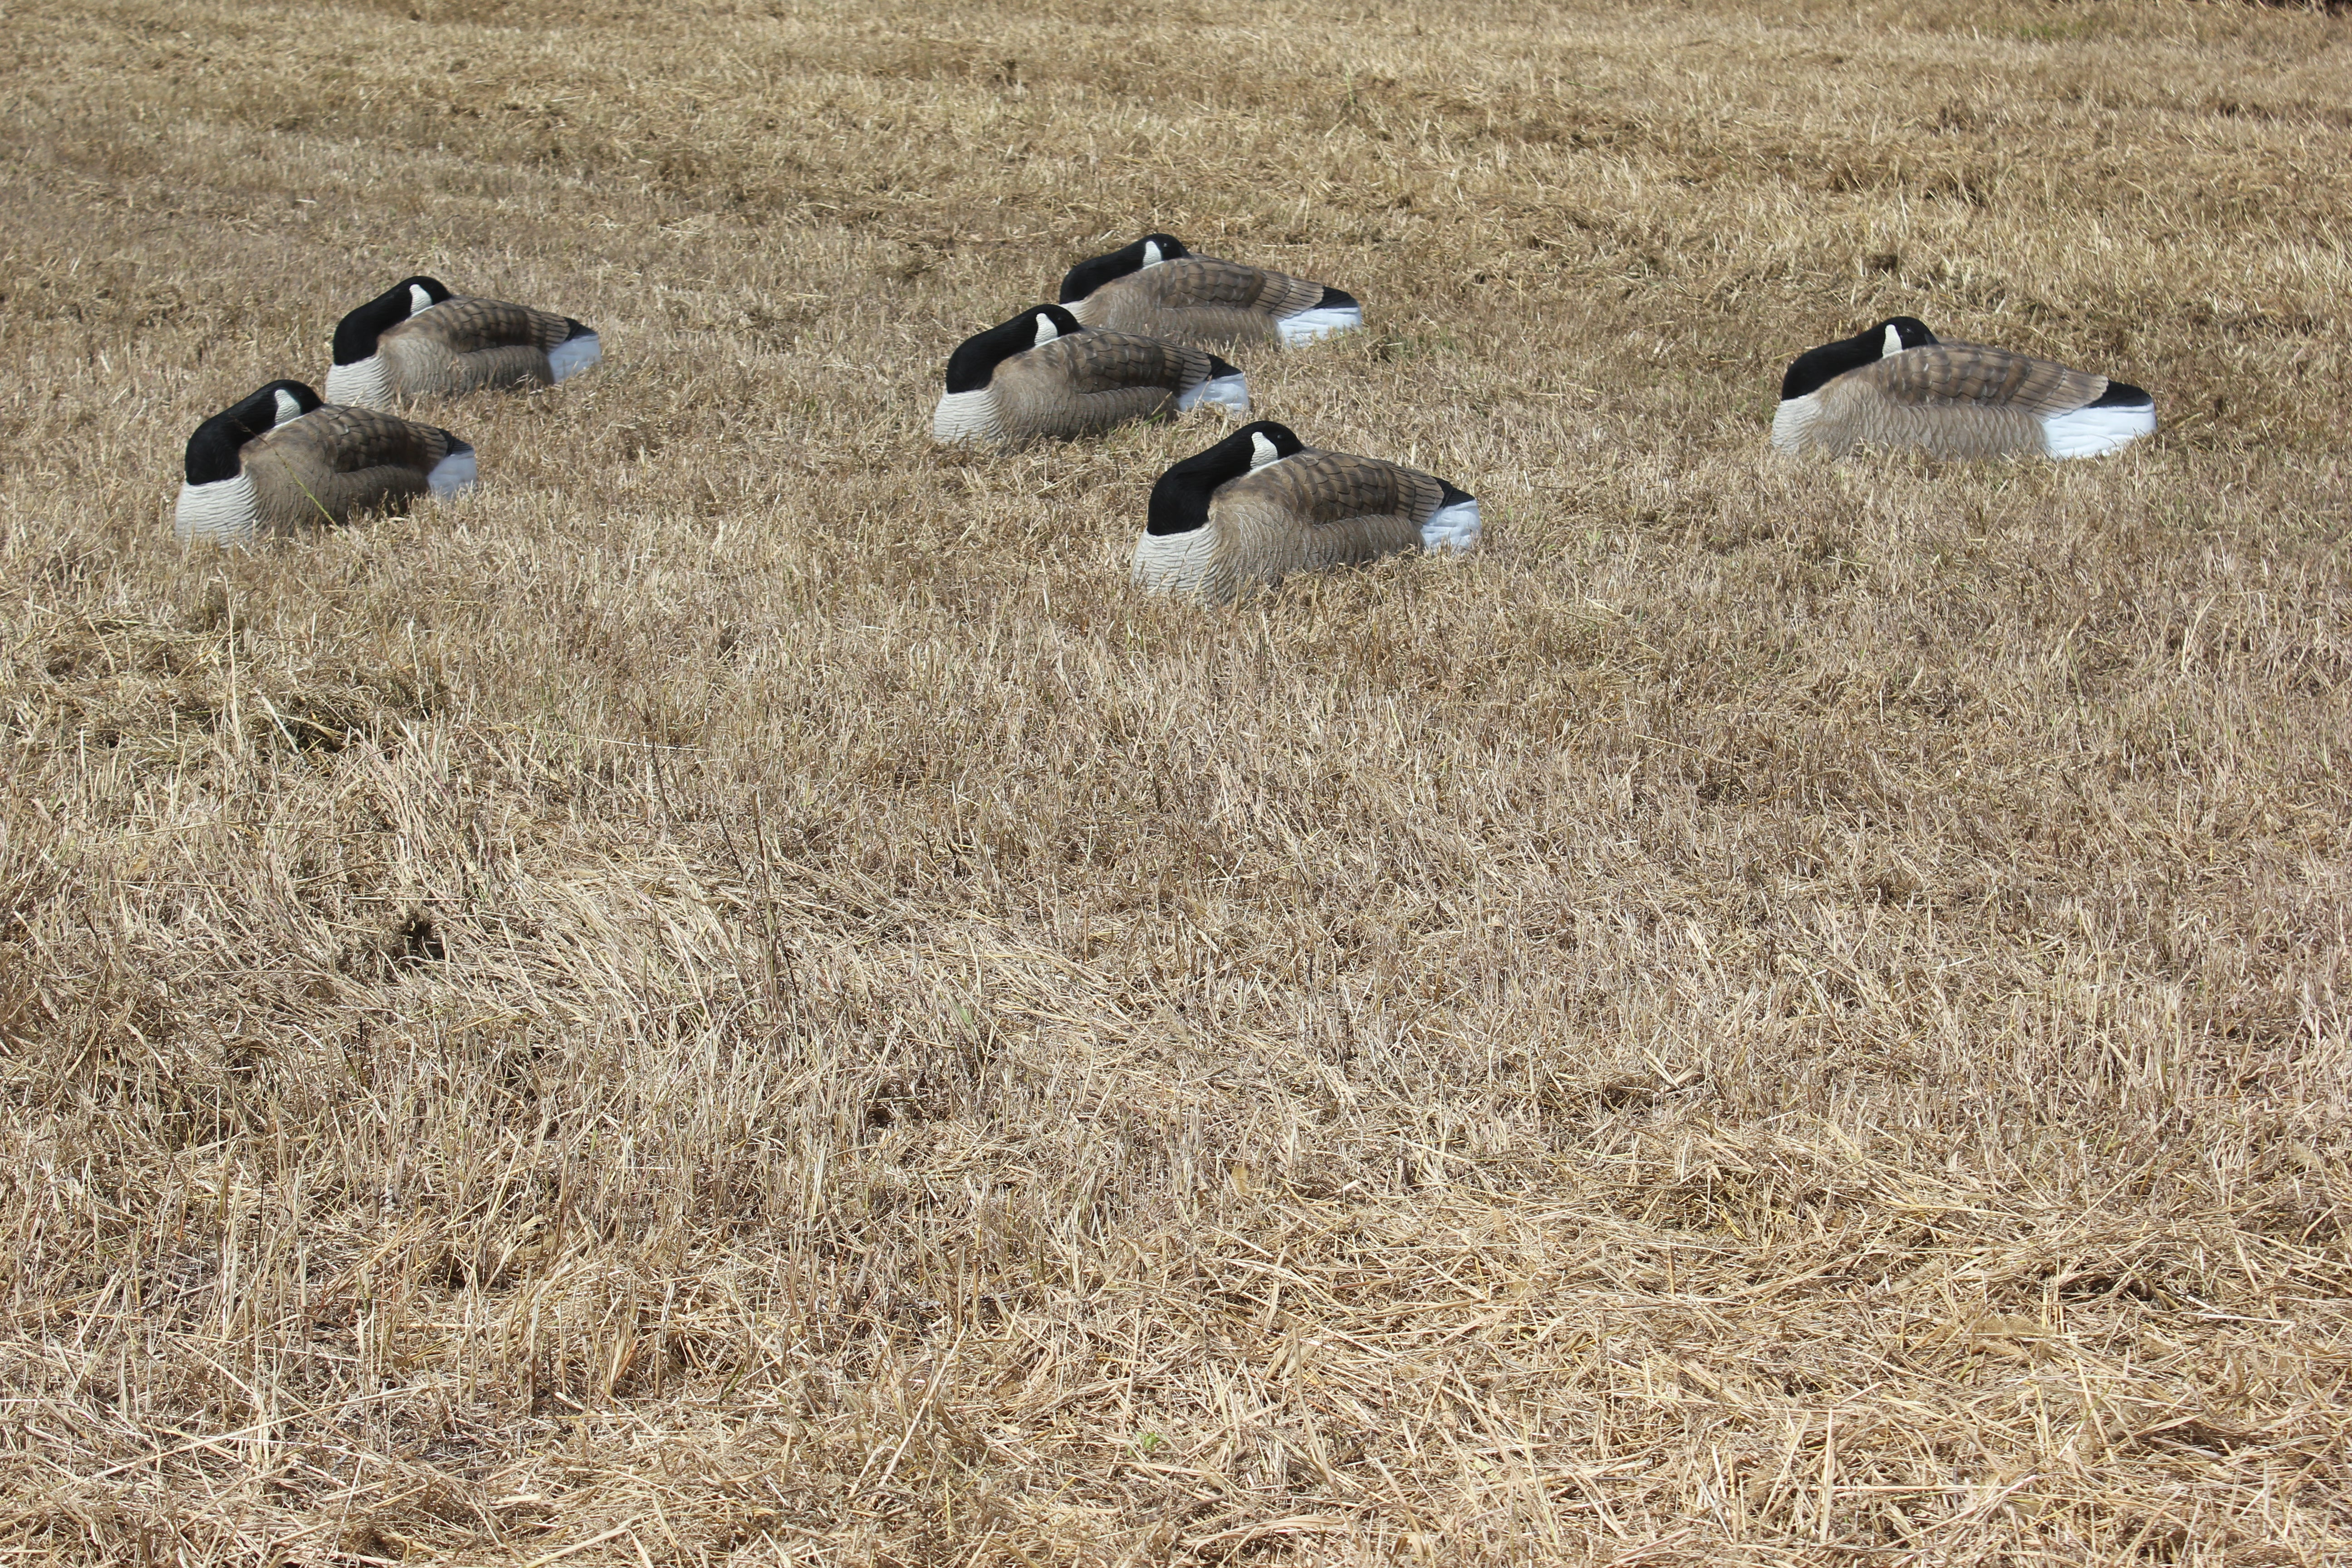 Bigfoot Canada Oversize Sleep Shell Decoys in the field